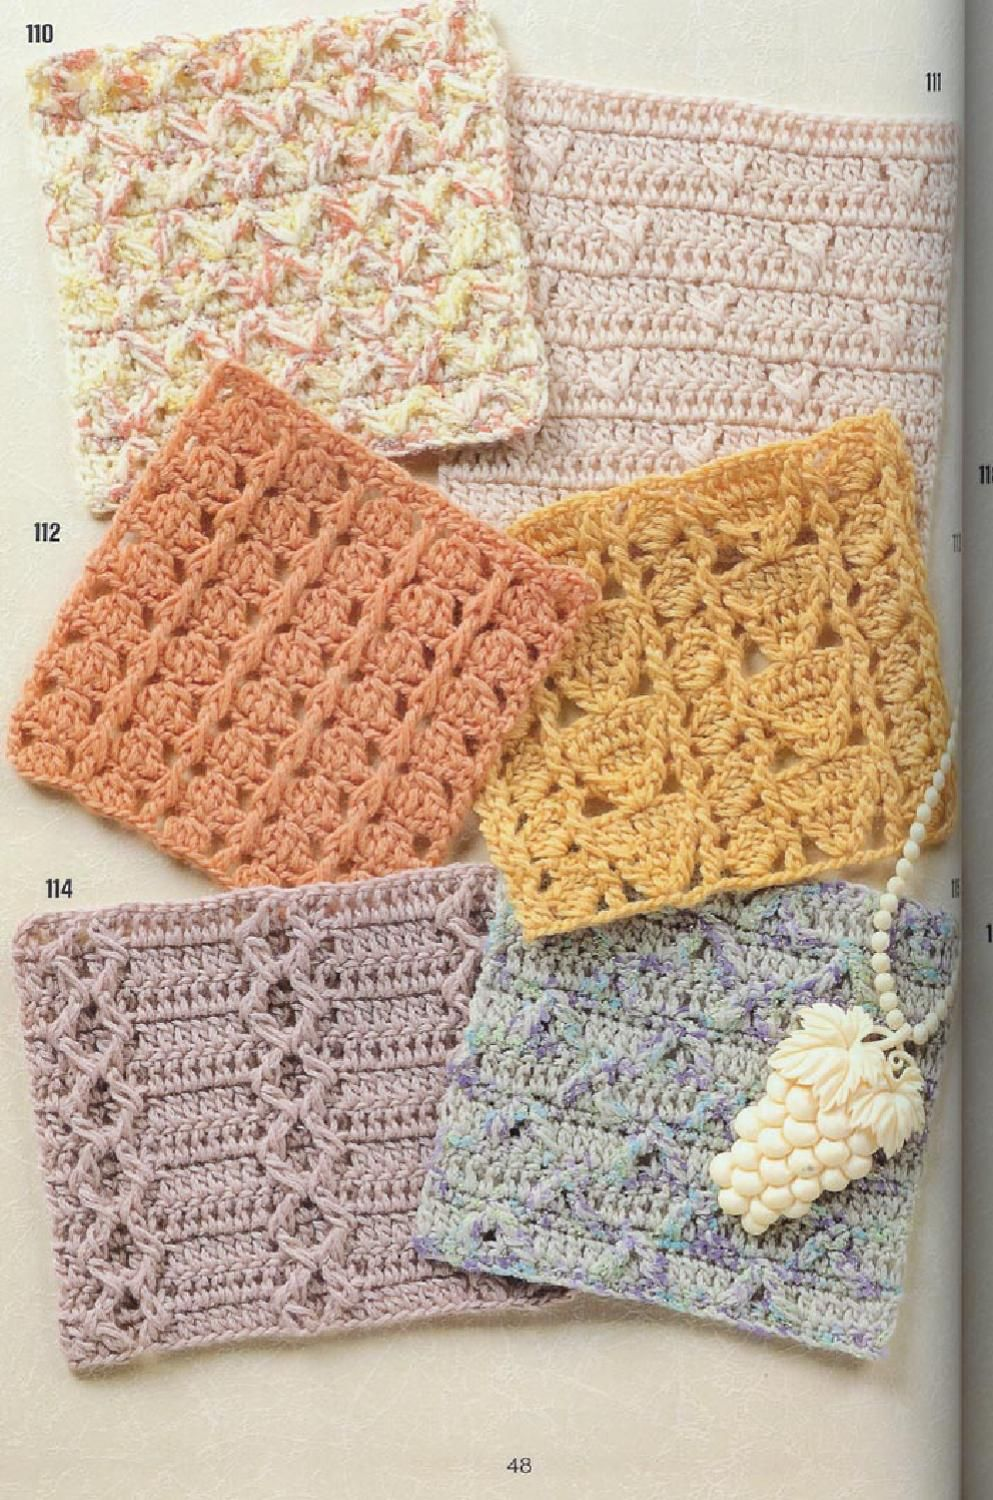 262 Patterns of crochet - issuu mag | DIY | Pinterest | Patrones de ...